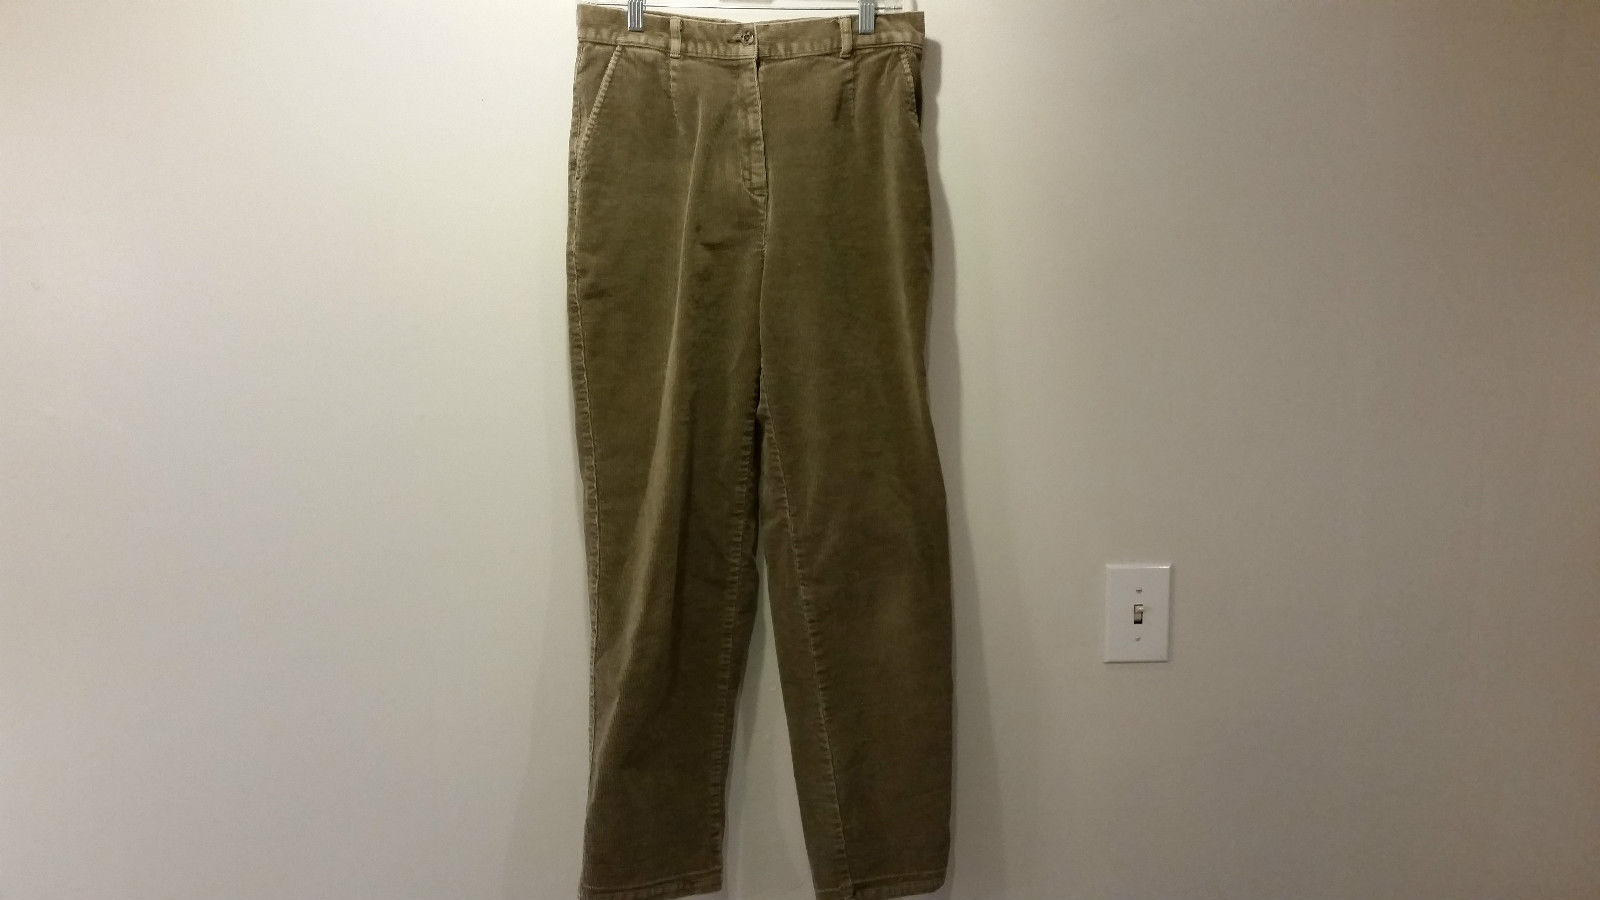 Light Brown Casual Pants Size 8 L L Bean Side Pockets One Back Pocket Belt Loops